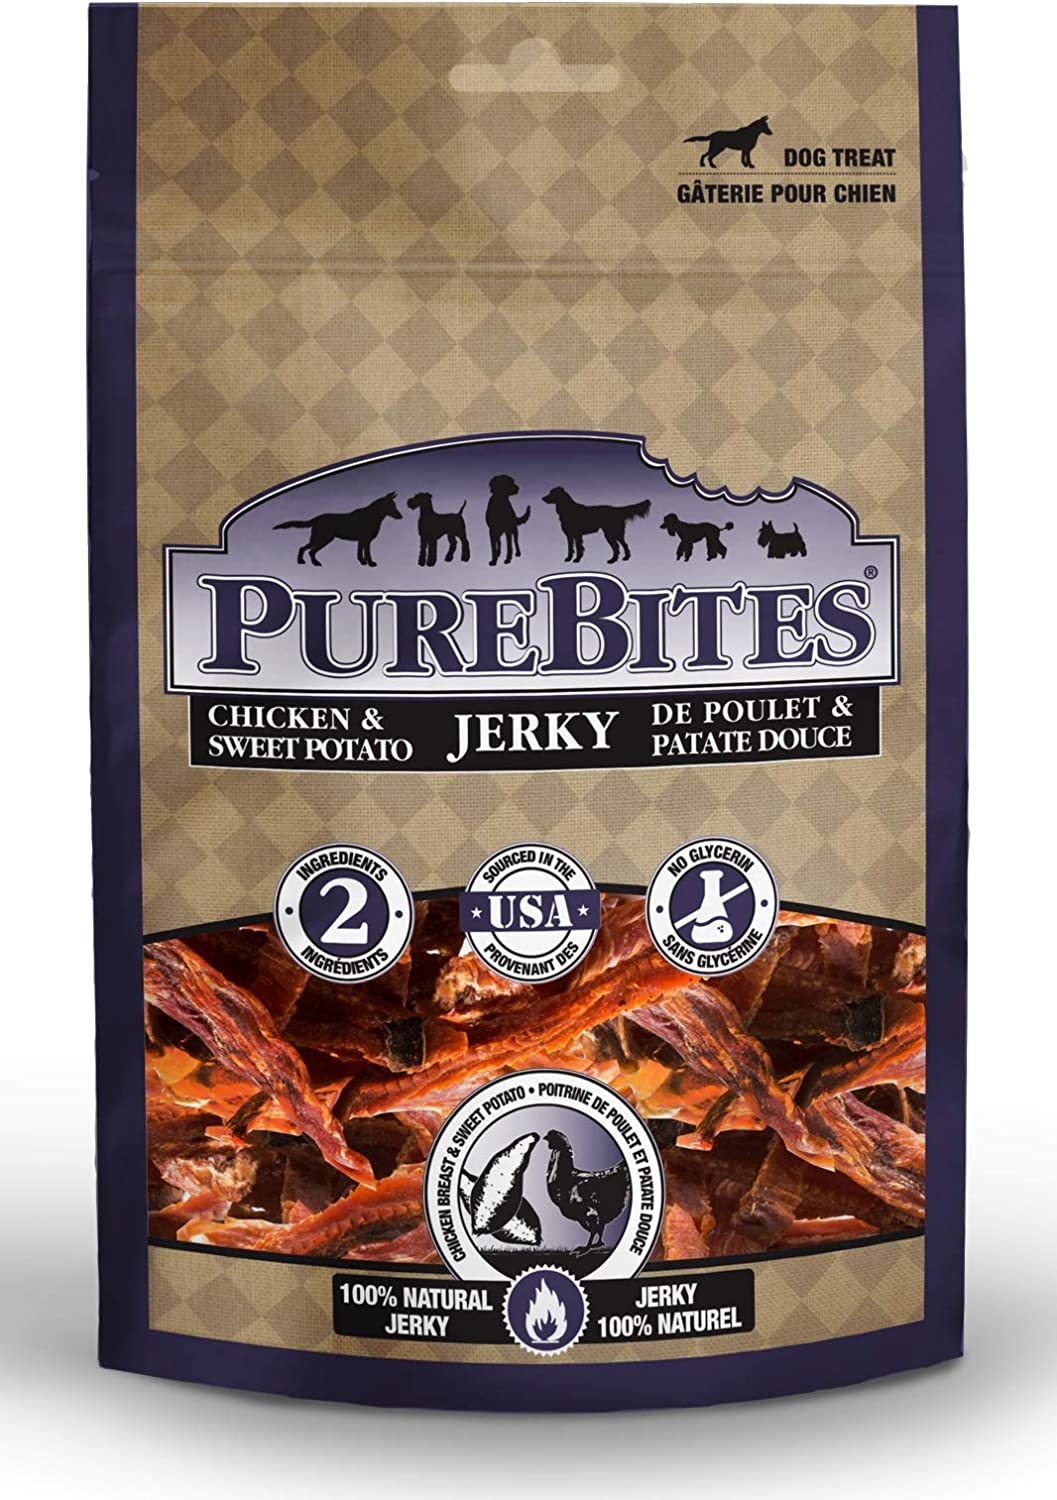 PureBites Chicken Sweet Potato Sales results No. 1 Jacksonville Mall for Jerky Dogs